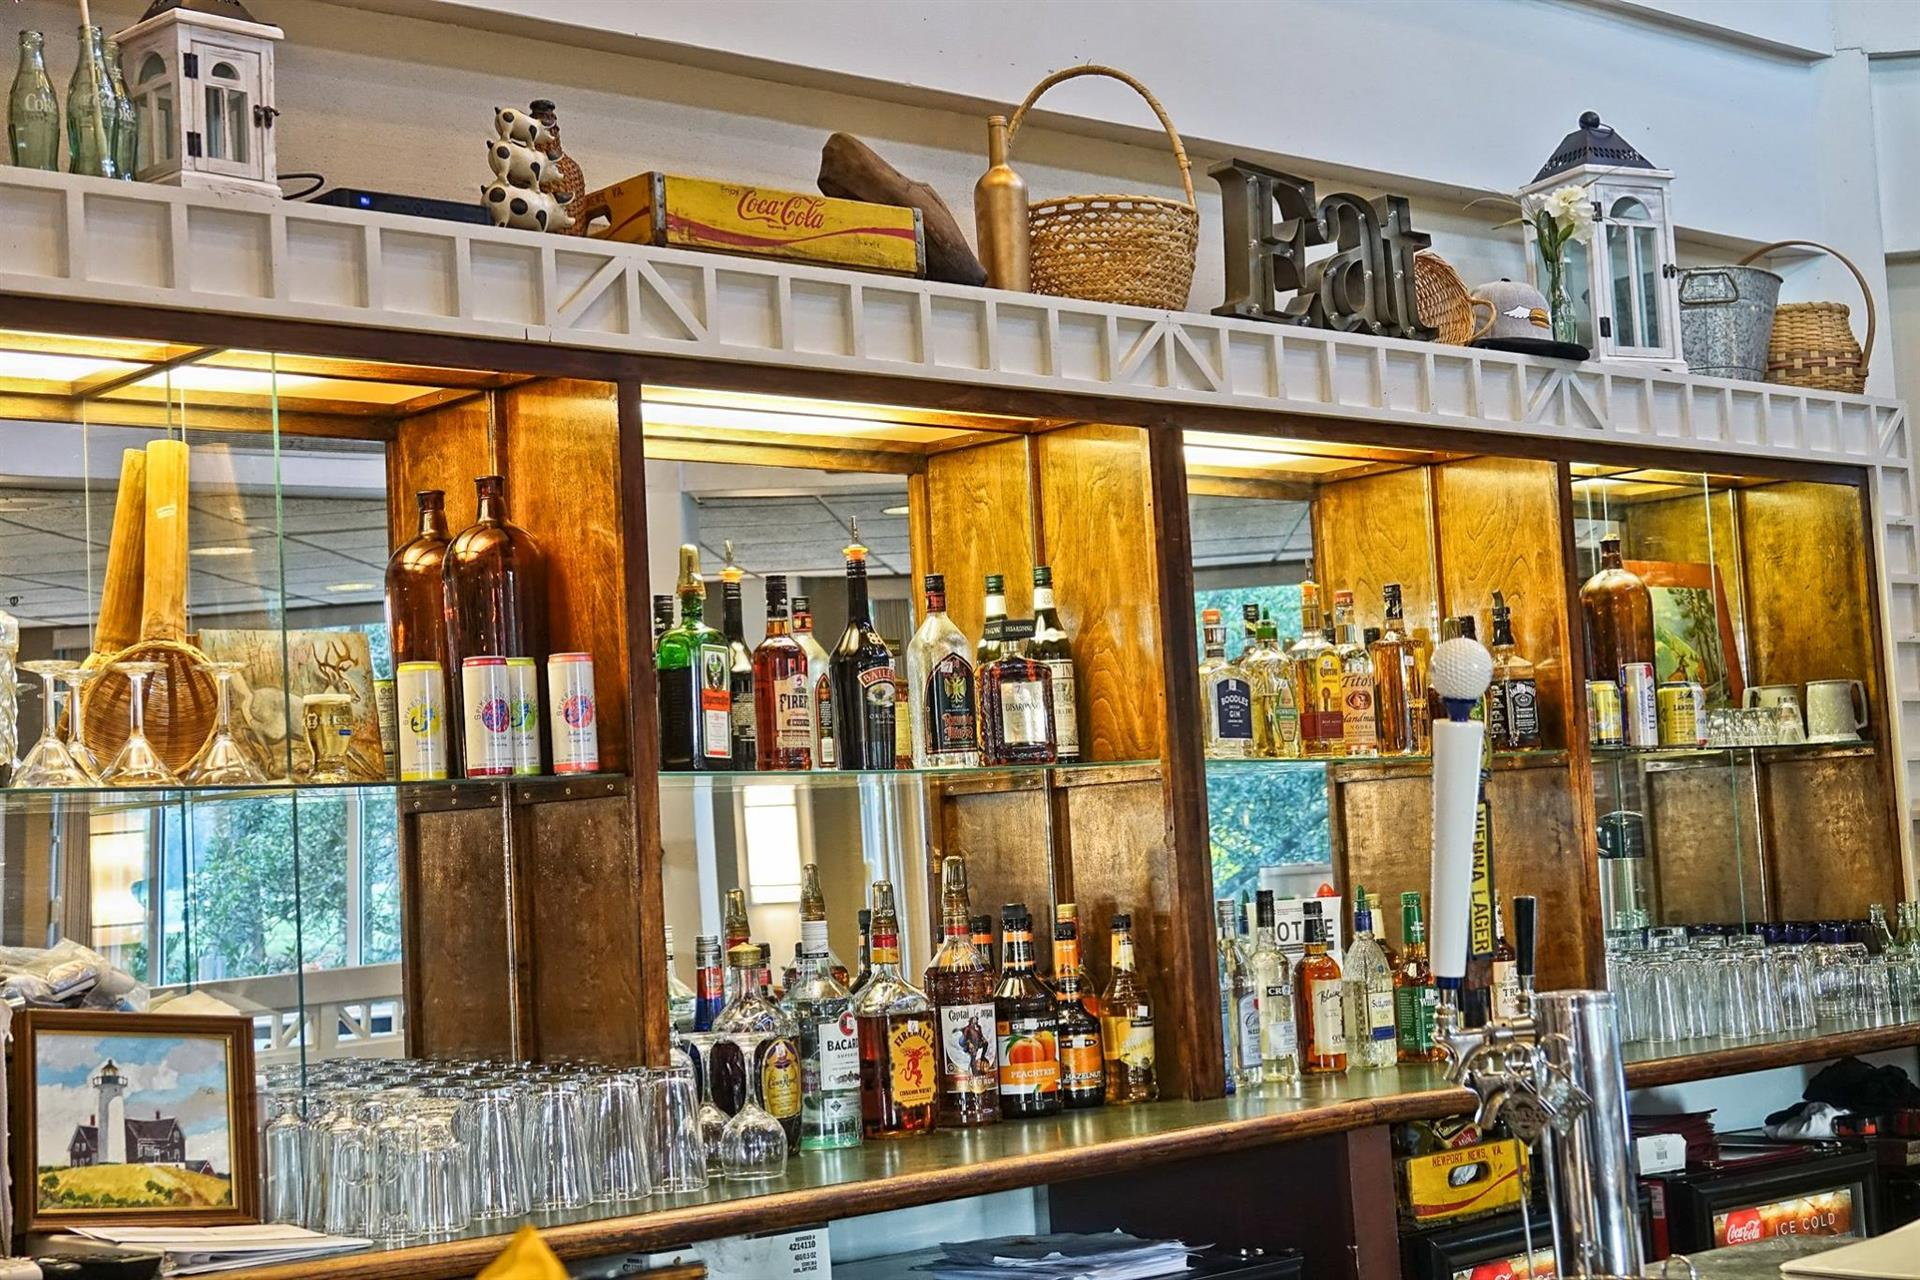 bar area setup with a wall display of various wine and liquor bottles behind the counter